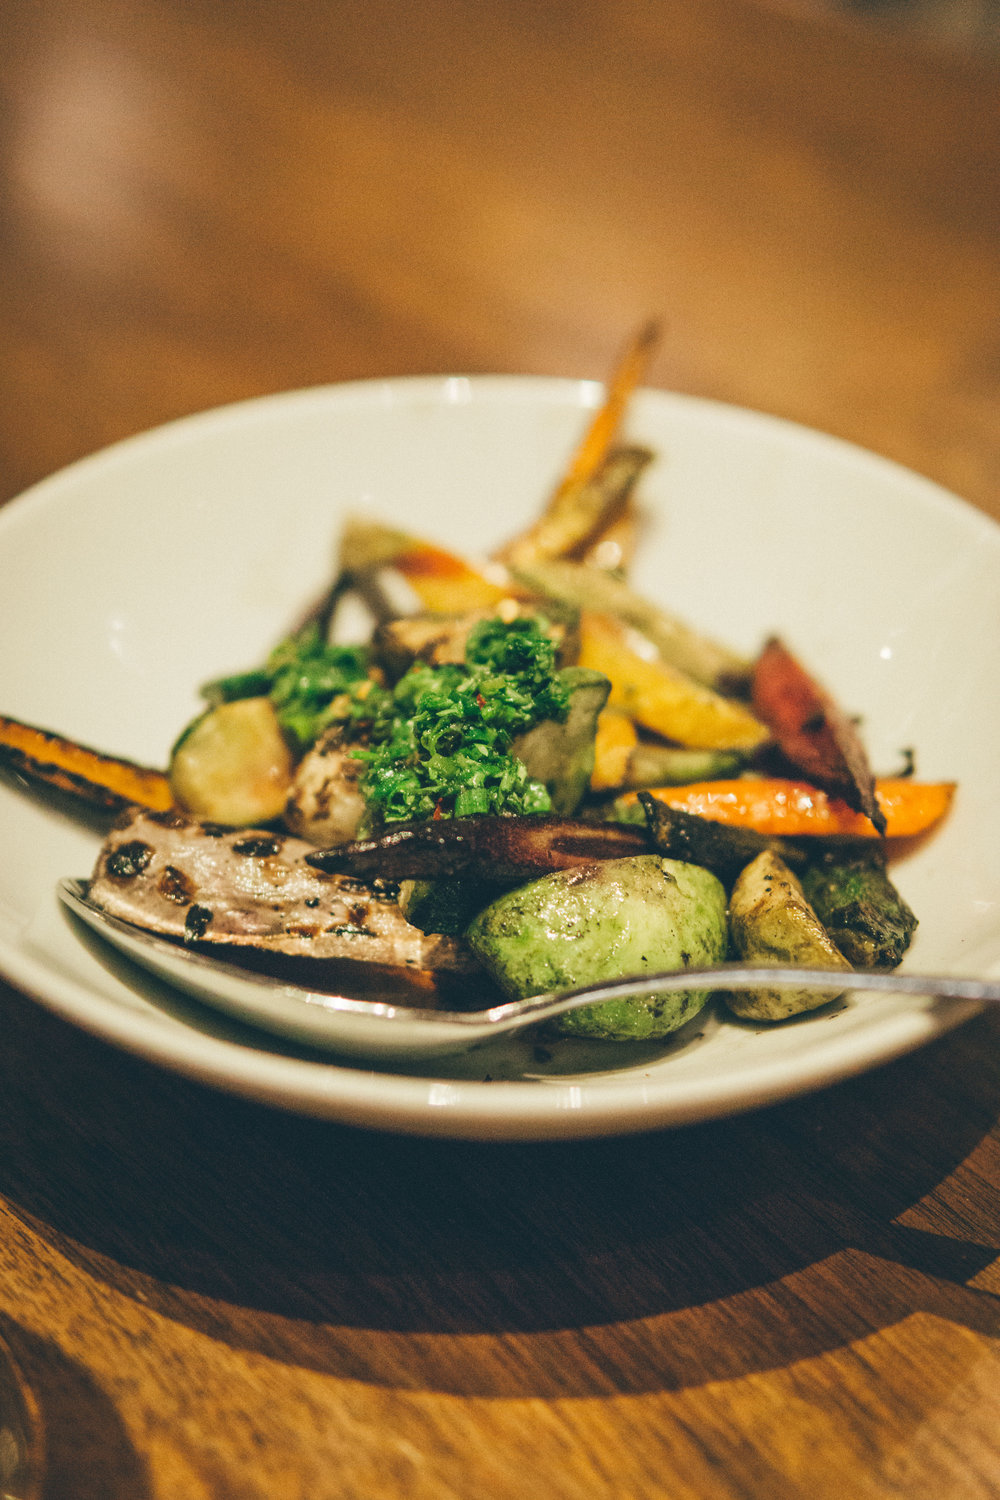 Roasted Petite Vegetable - with chimichurri